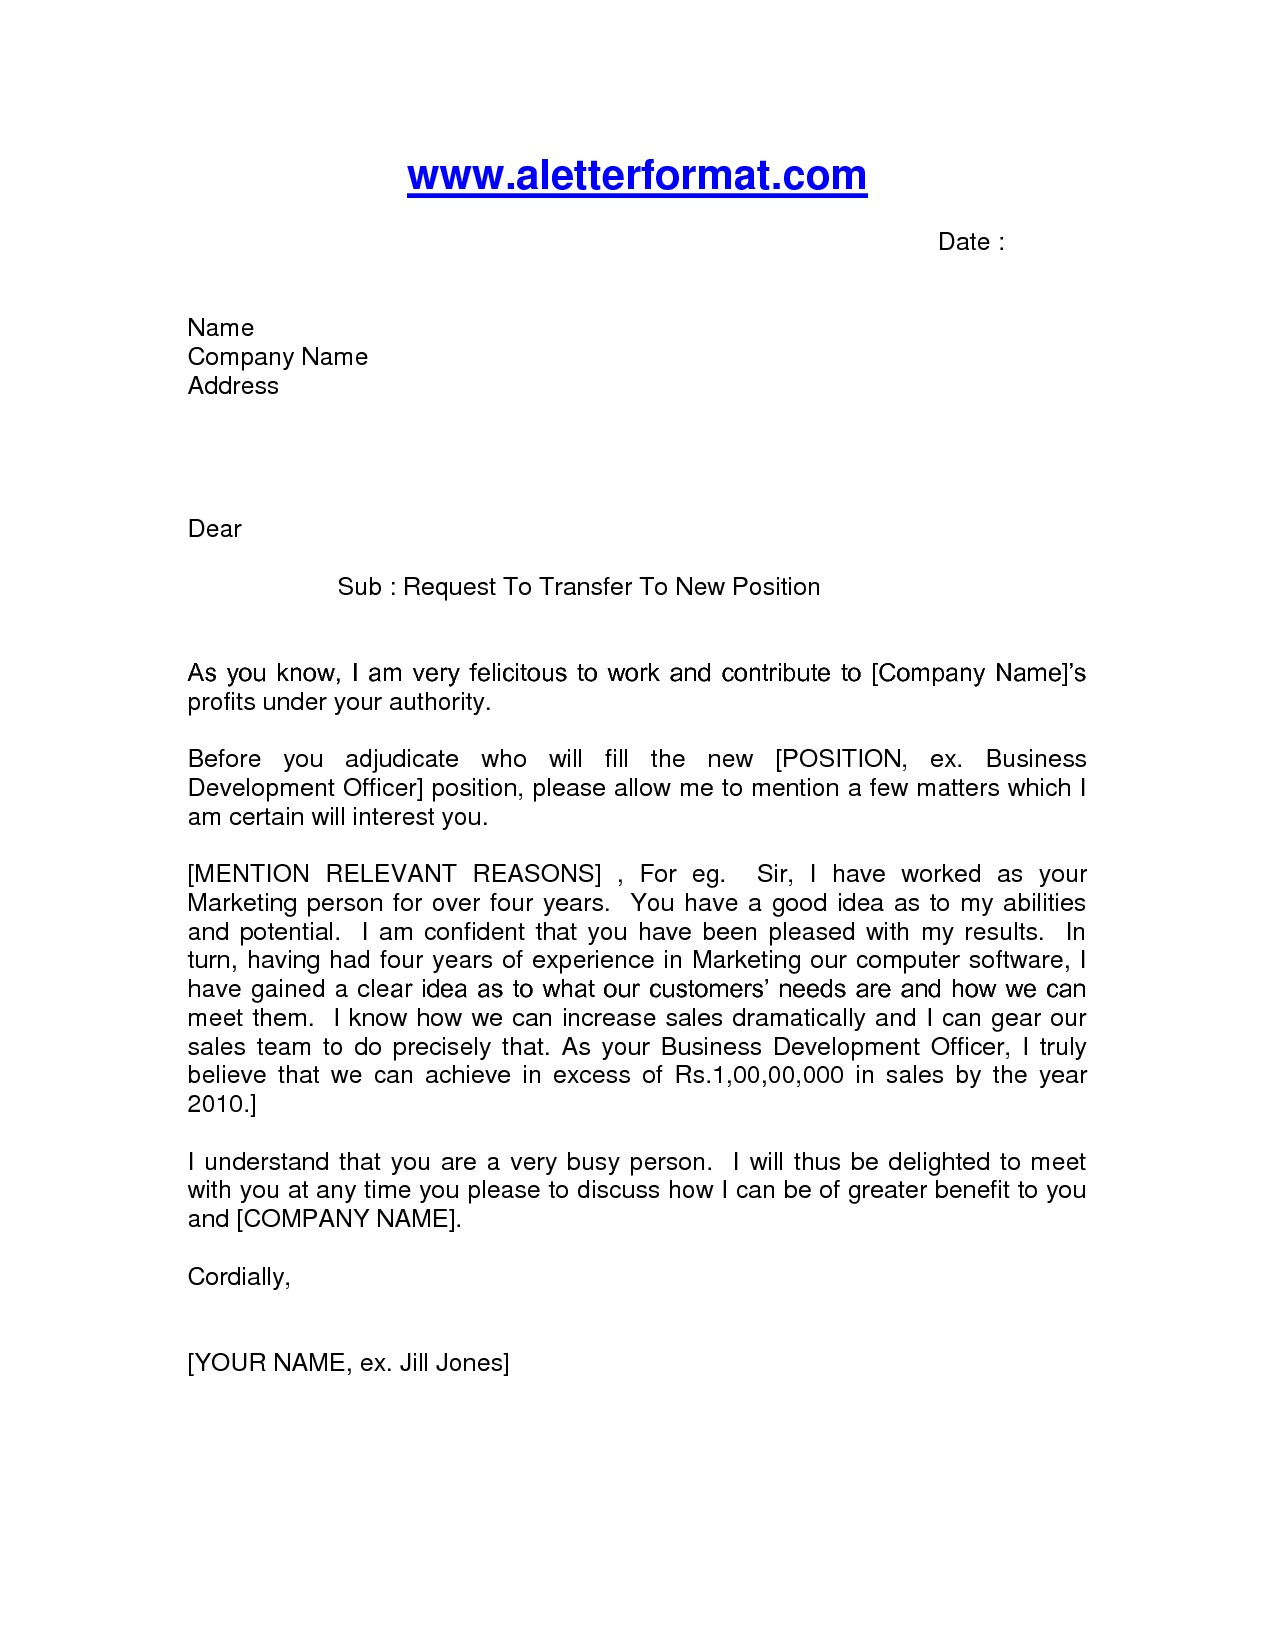 Letter Of Instruction Template Stock Transfer - Sample format Letter for Job Transfer Request Fresh Letter